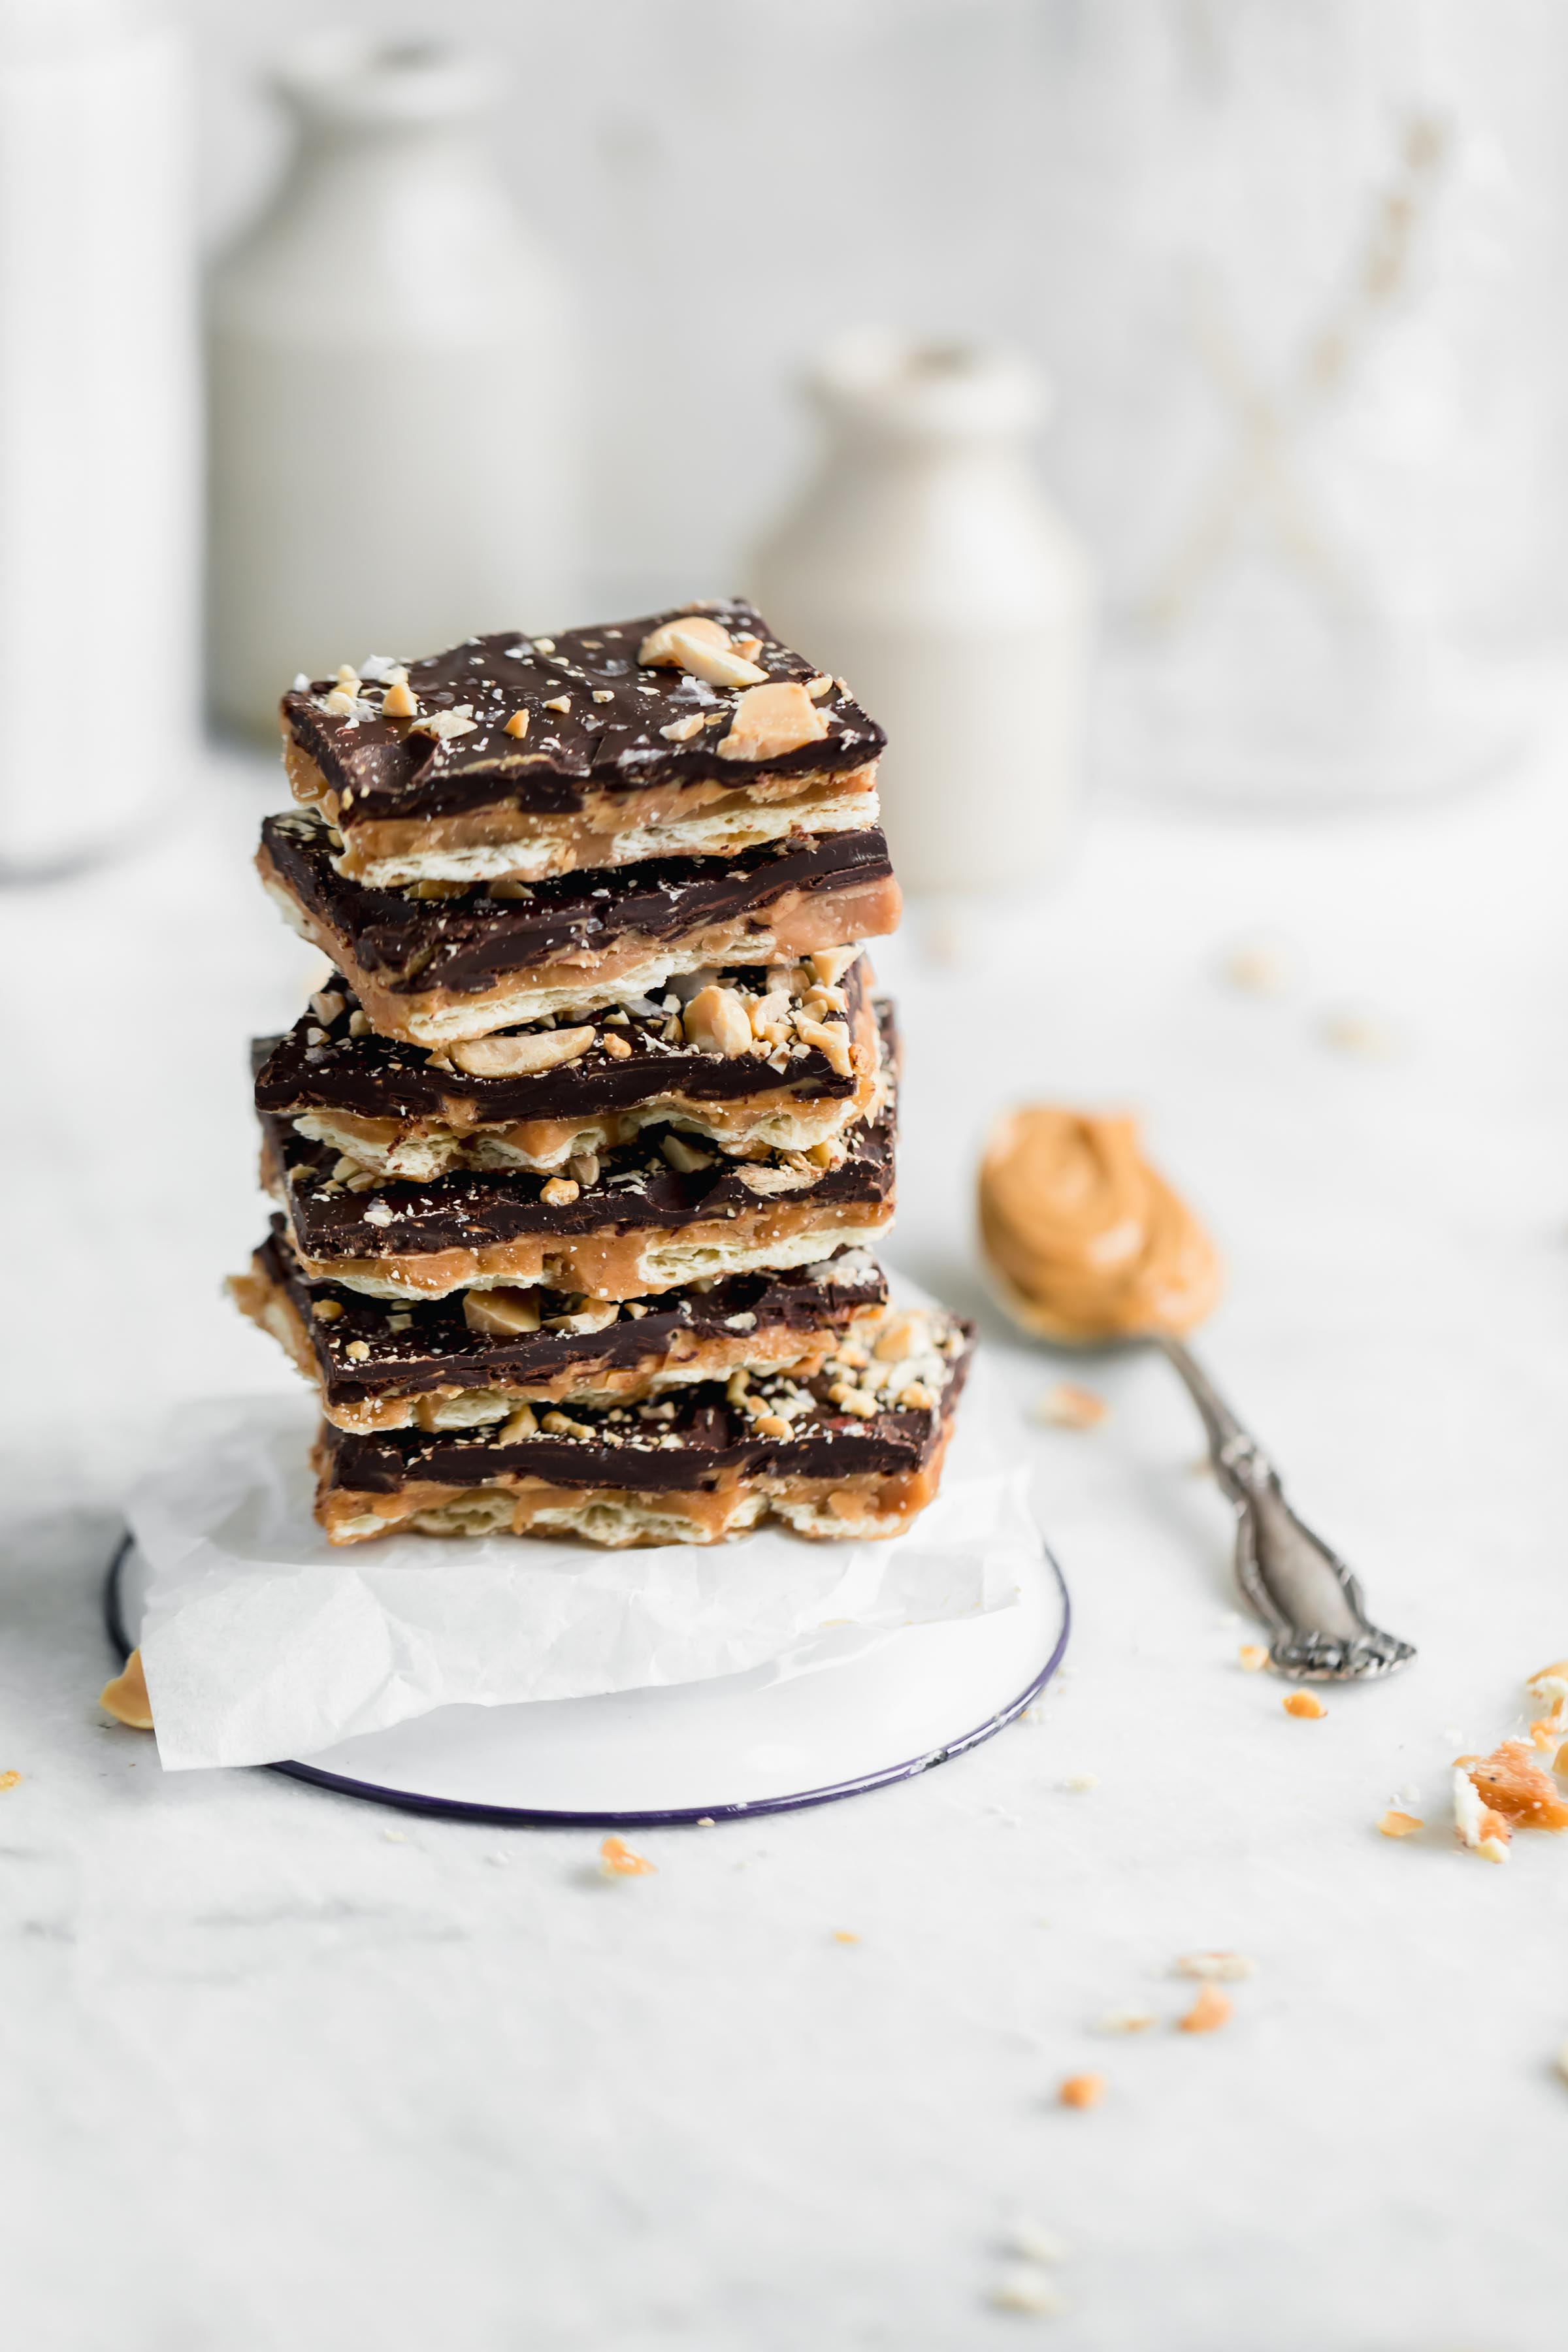 Stack of peanut butter saltine toffee bark. A crowd-pleasing sweet, salty, crunchy, and smooth Peanut Butter Toffee bark made entirely with ingredients you probably already have in your pantry! Hello, sweet thing!